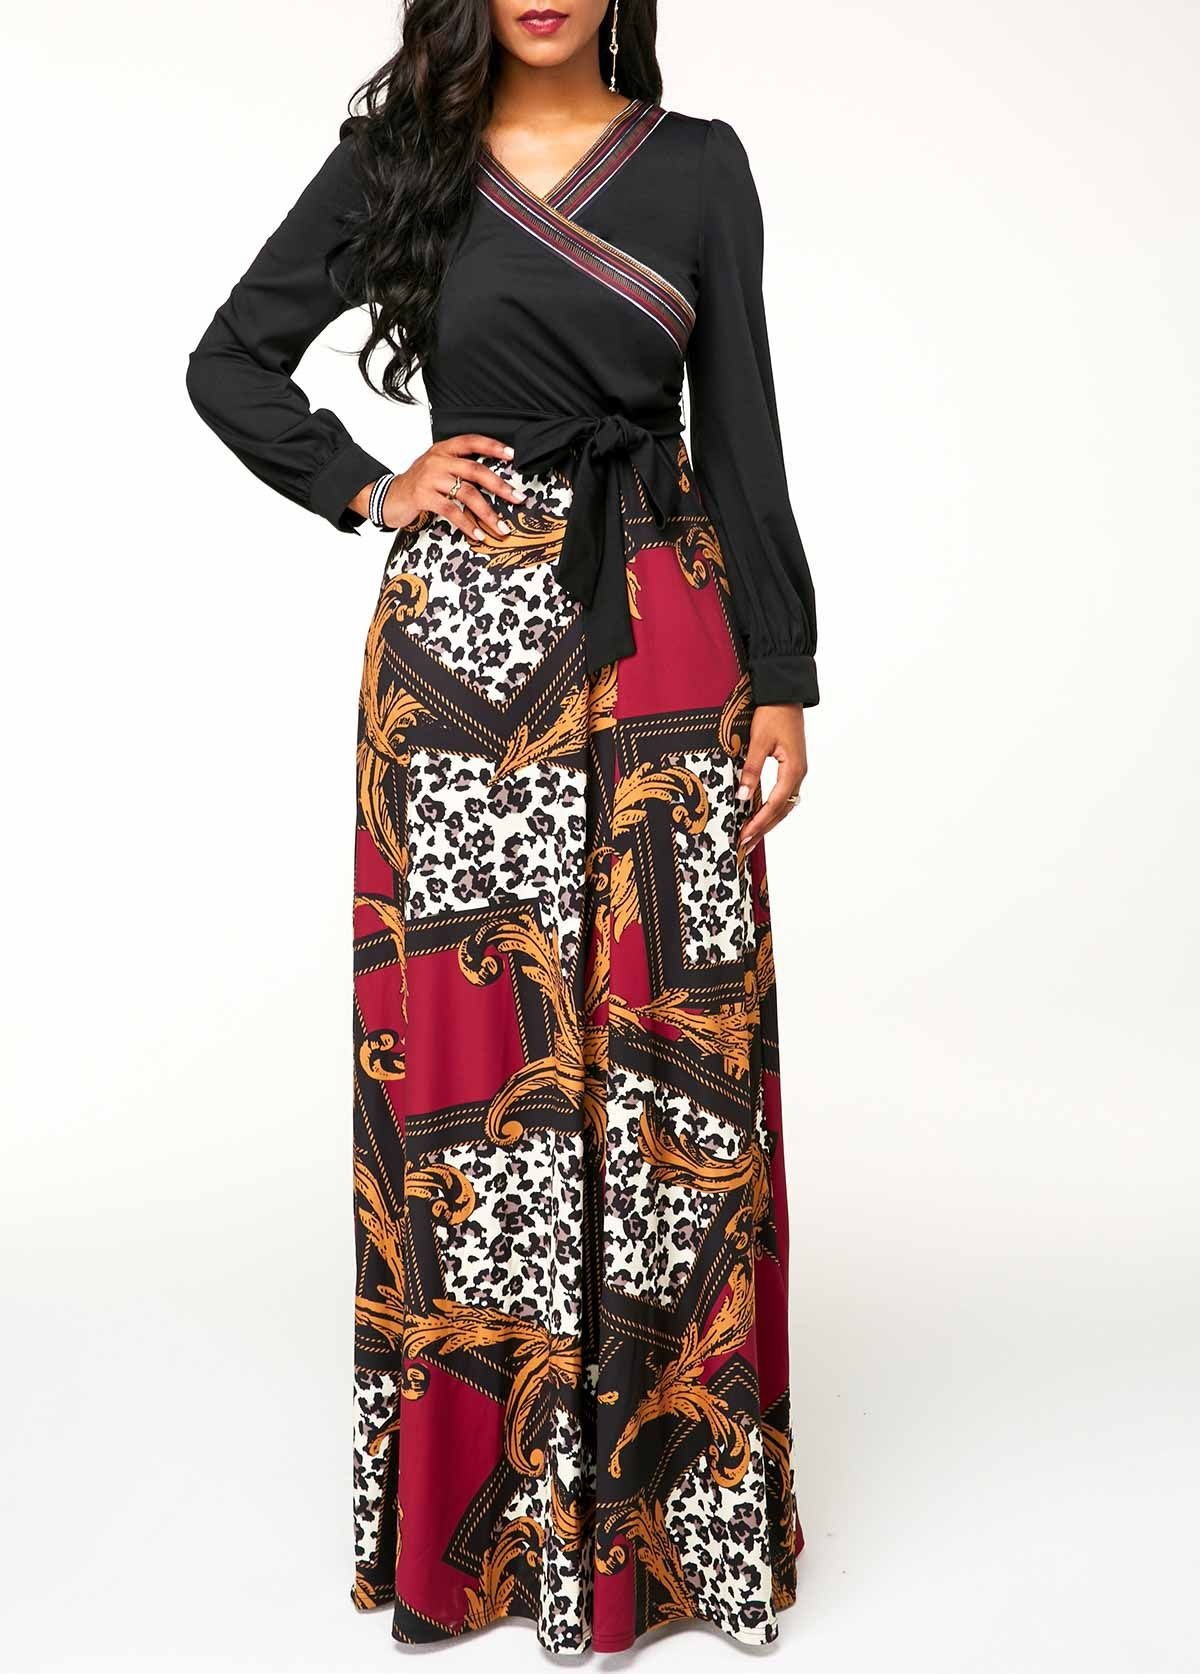 Long sleeve mock wrap v neck maxi dress in my fashions